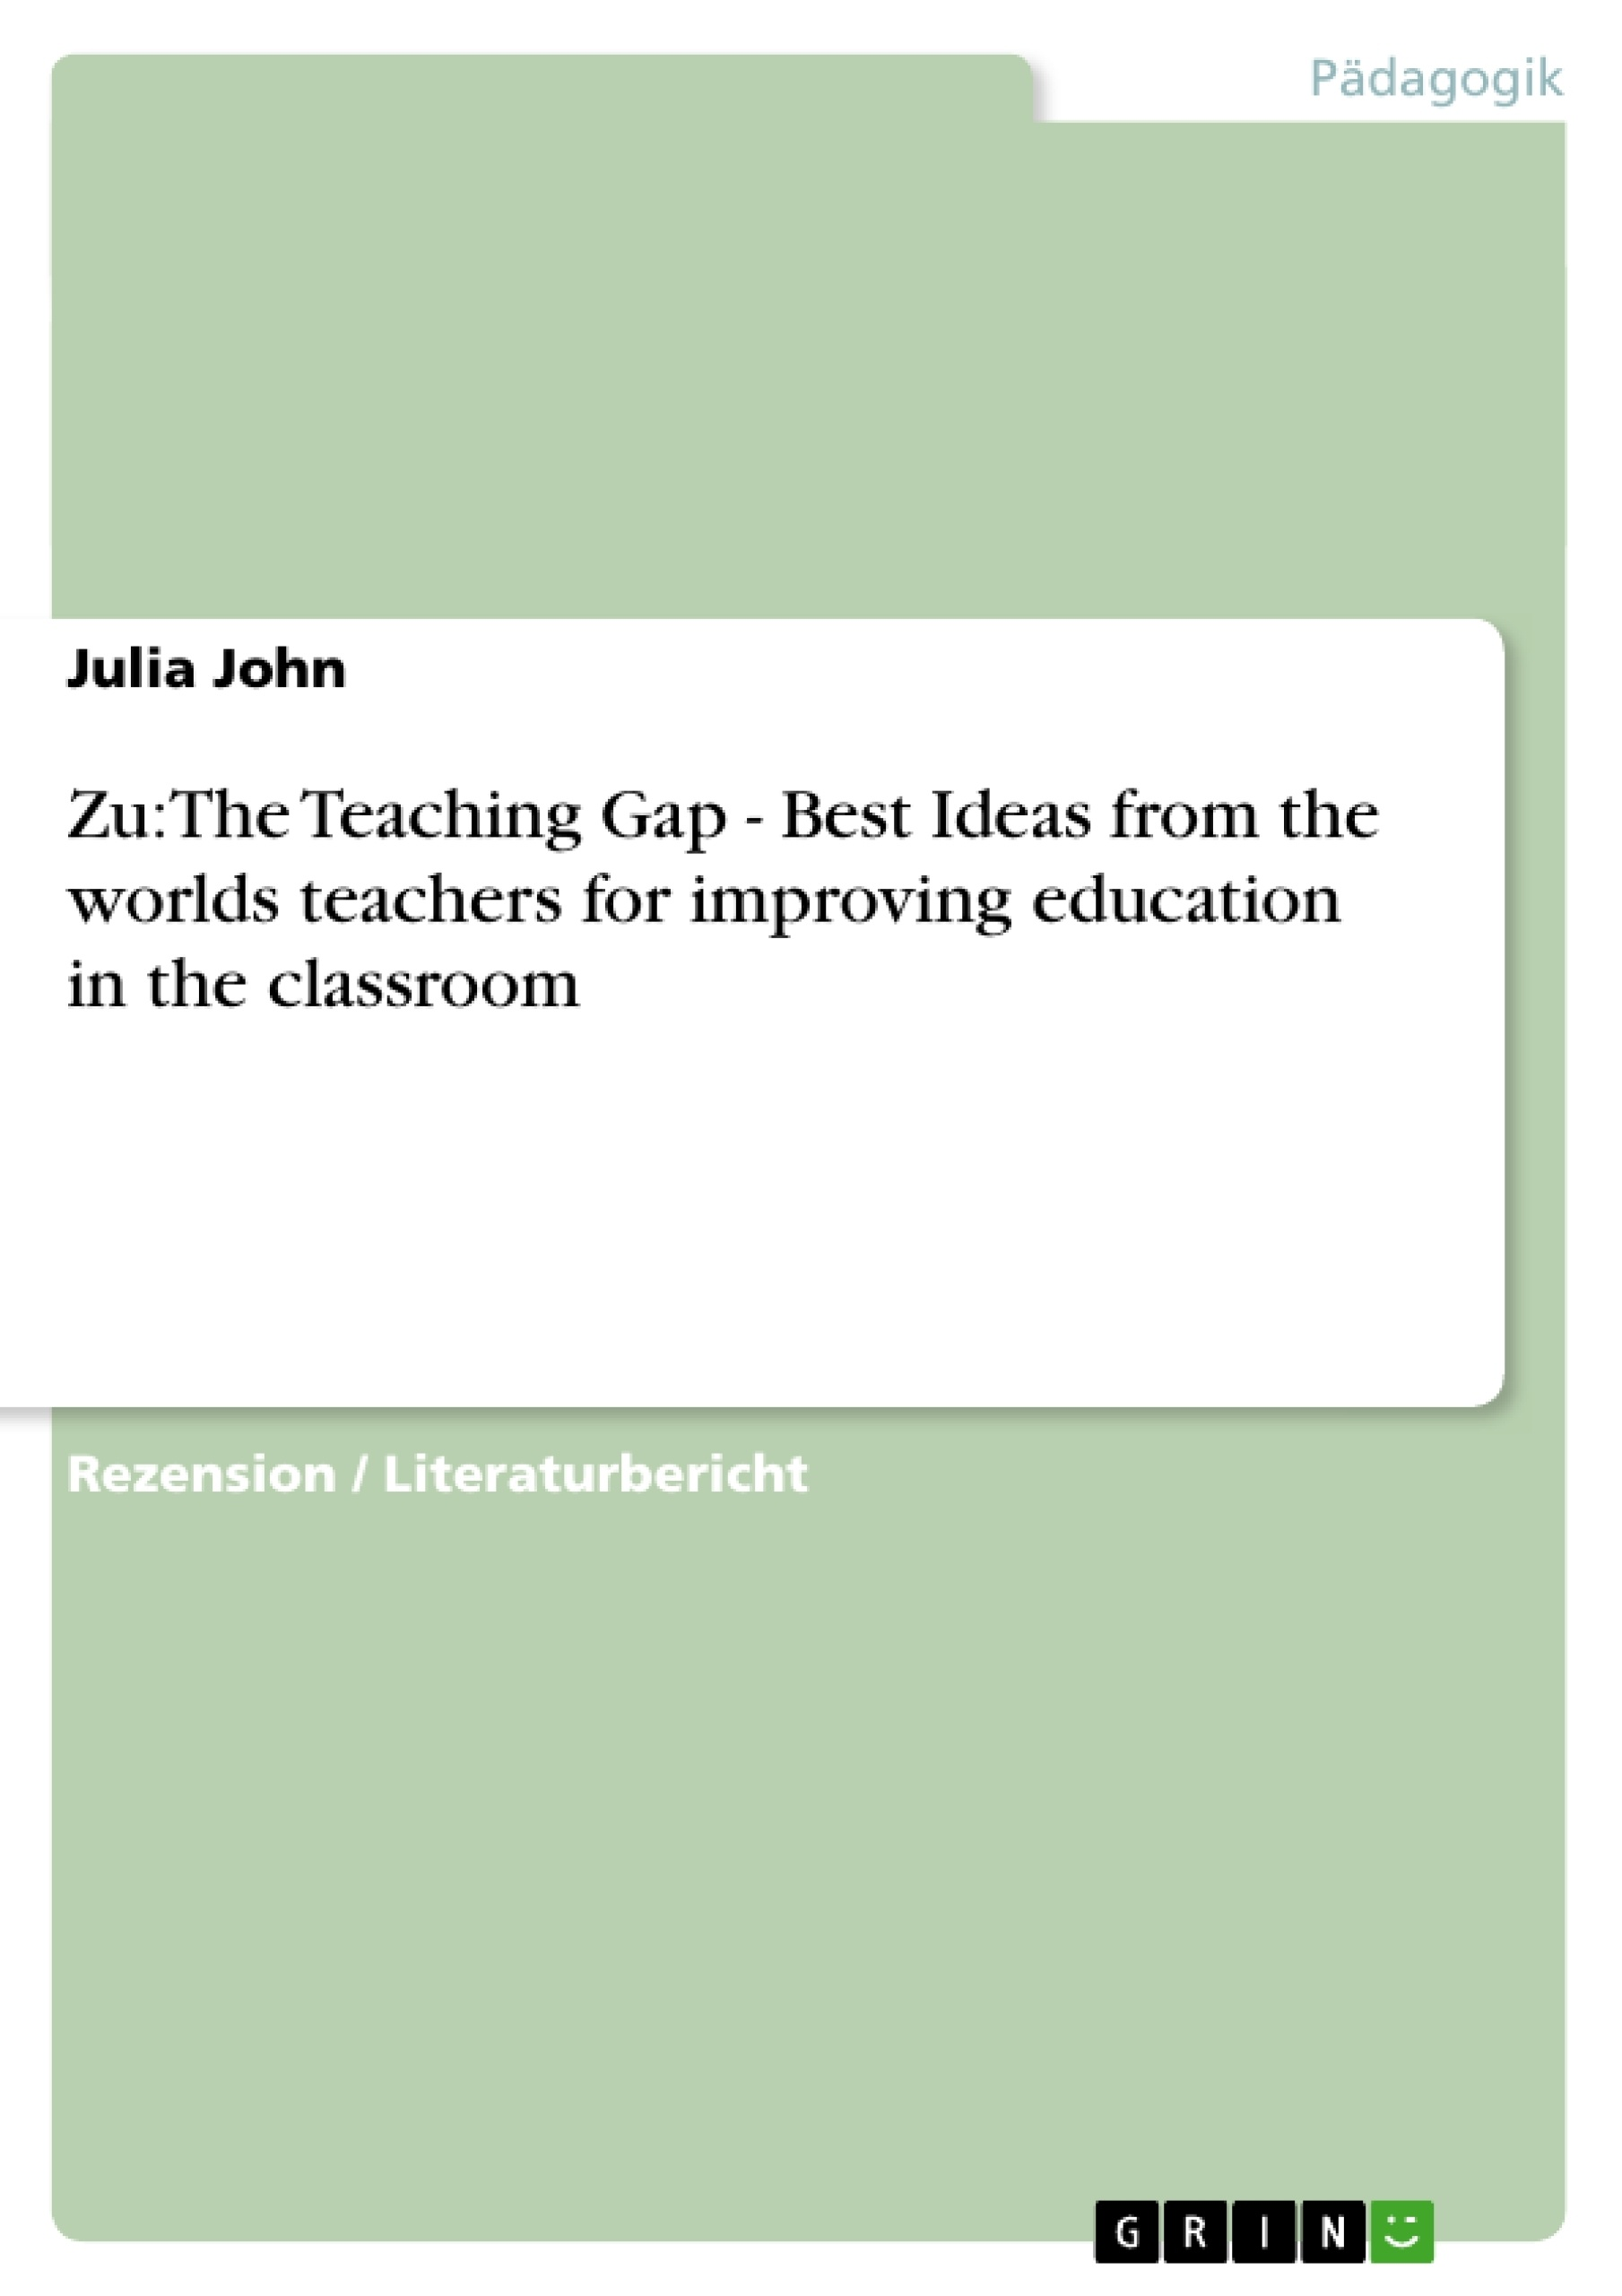 Titel: Zu: The Teaching Gap - Best Ideas from the worlds teachers for improving education in the classroom